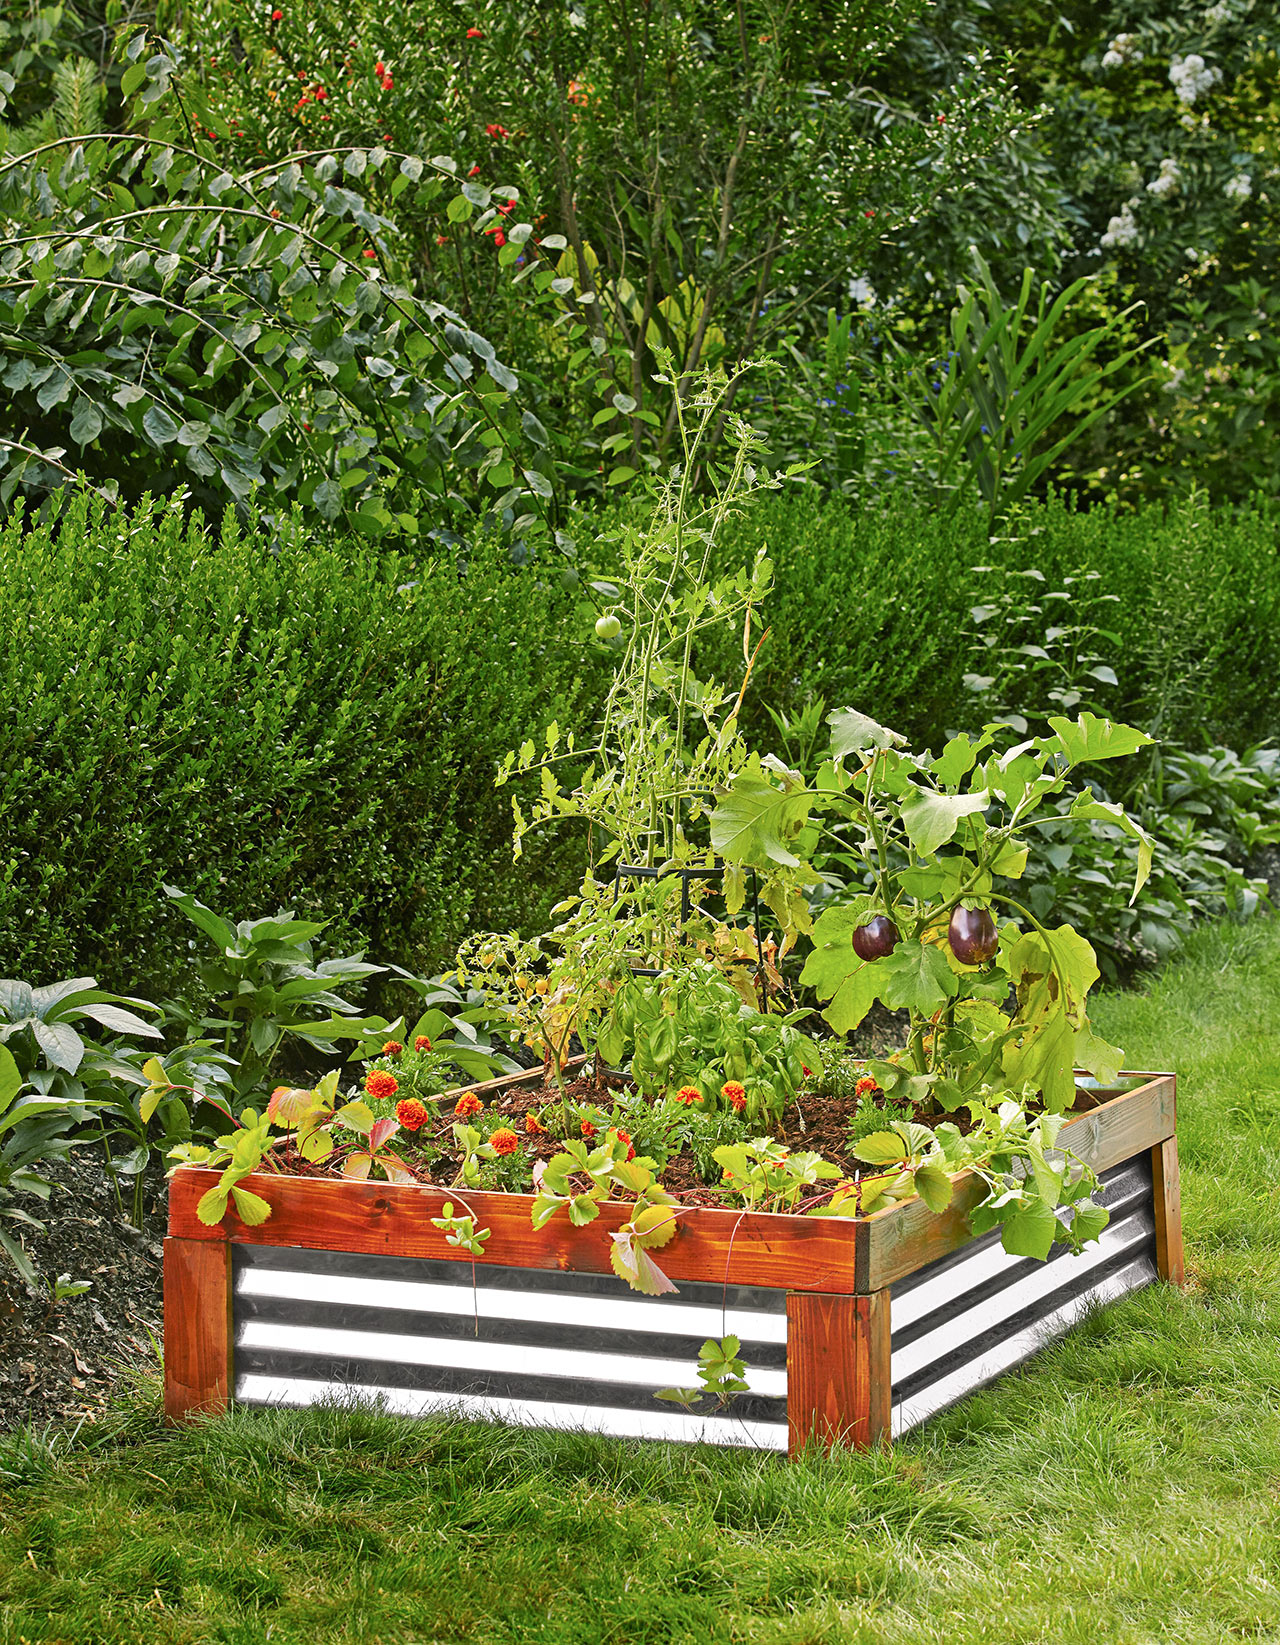 Why You Need a Raised Garden Bed | Better Homes & Gardens Raised Herb Garden Planter Designs on vertical garden planter, raised flower planter, raised redwood planter boxes, raised patio planter,